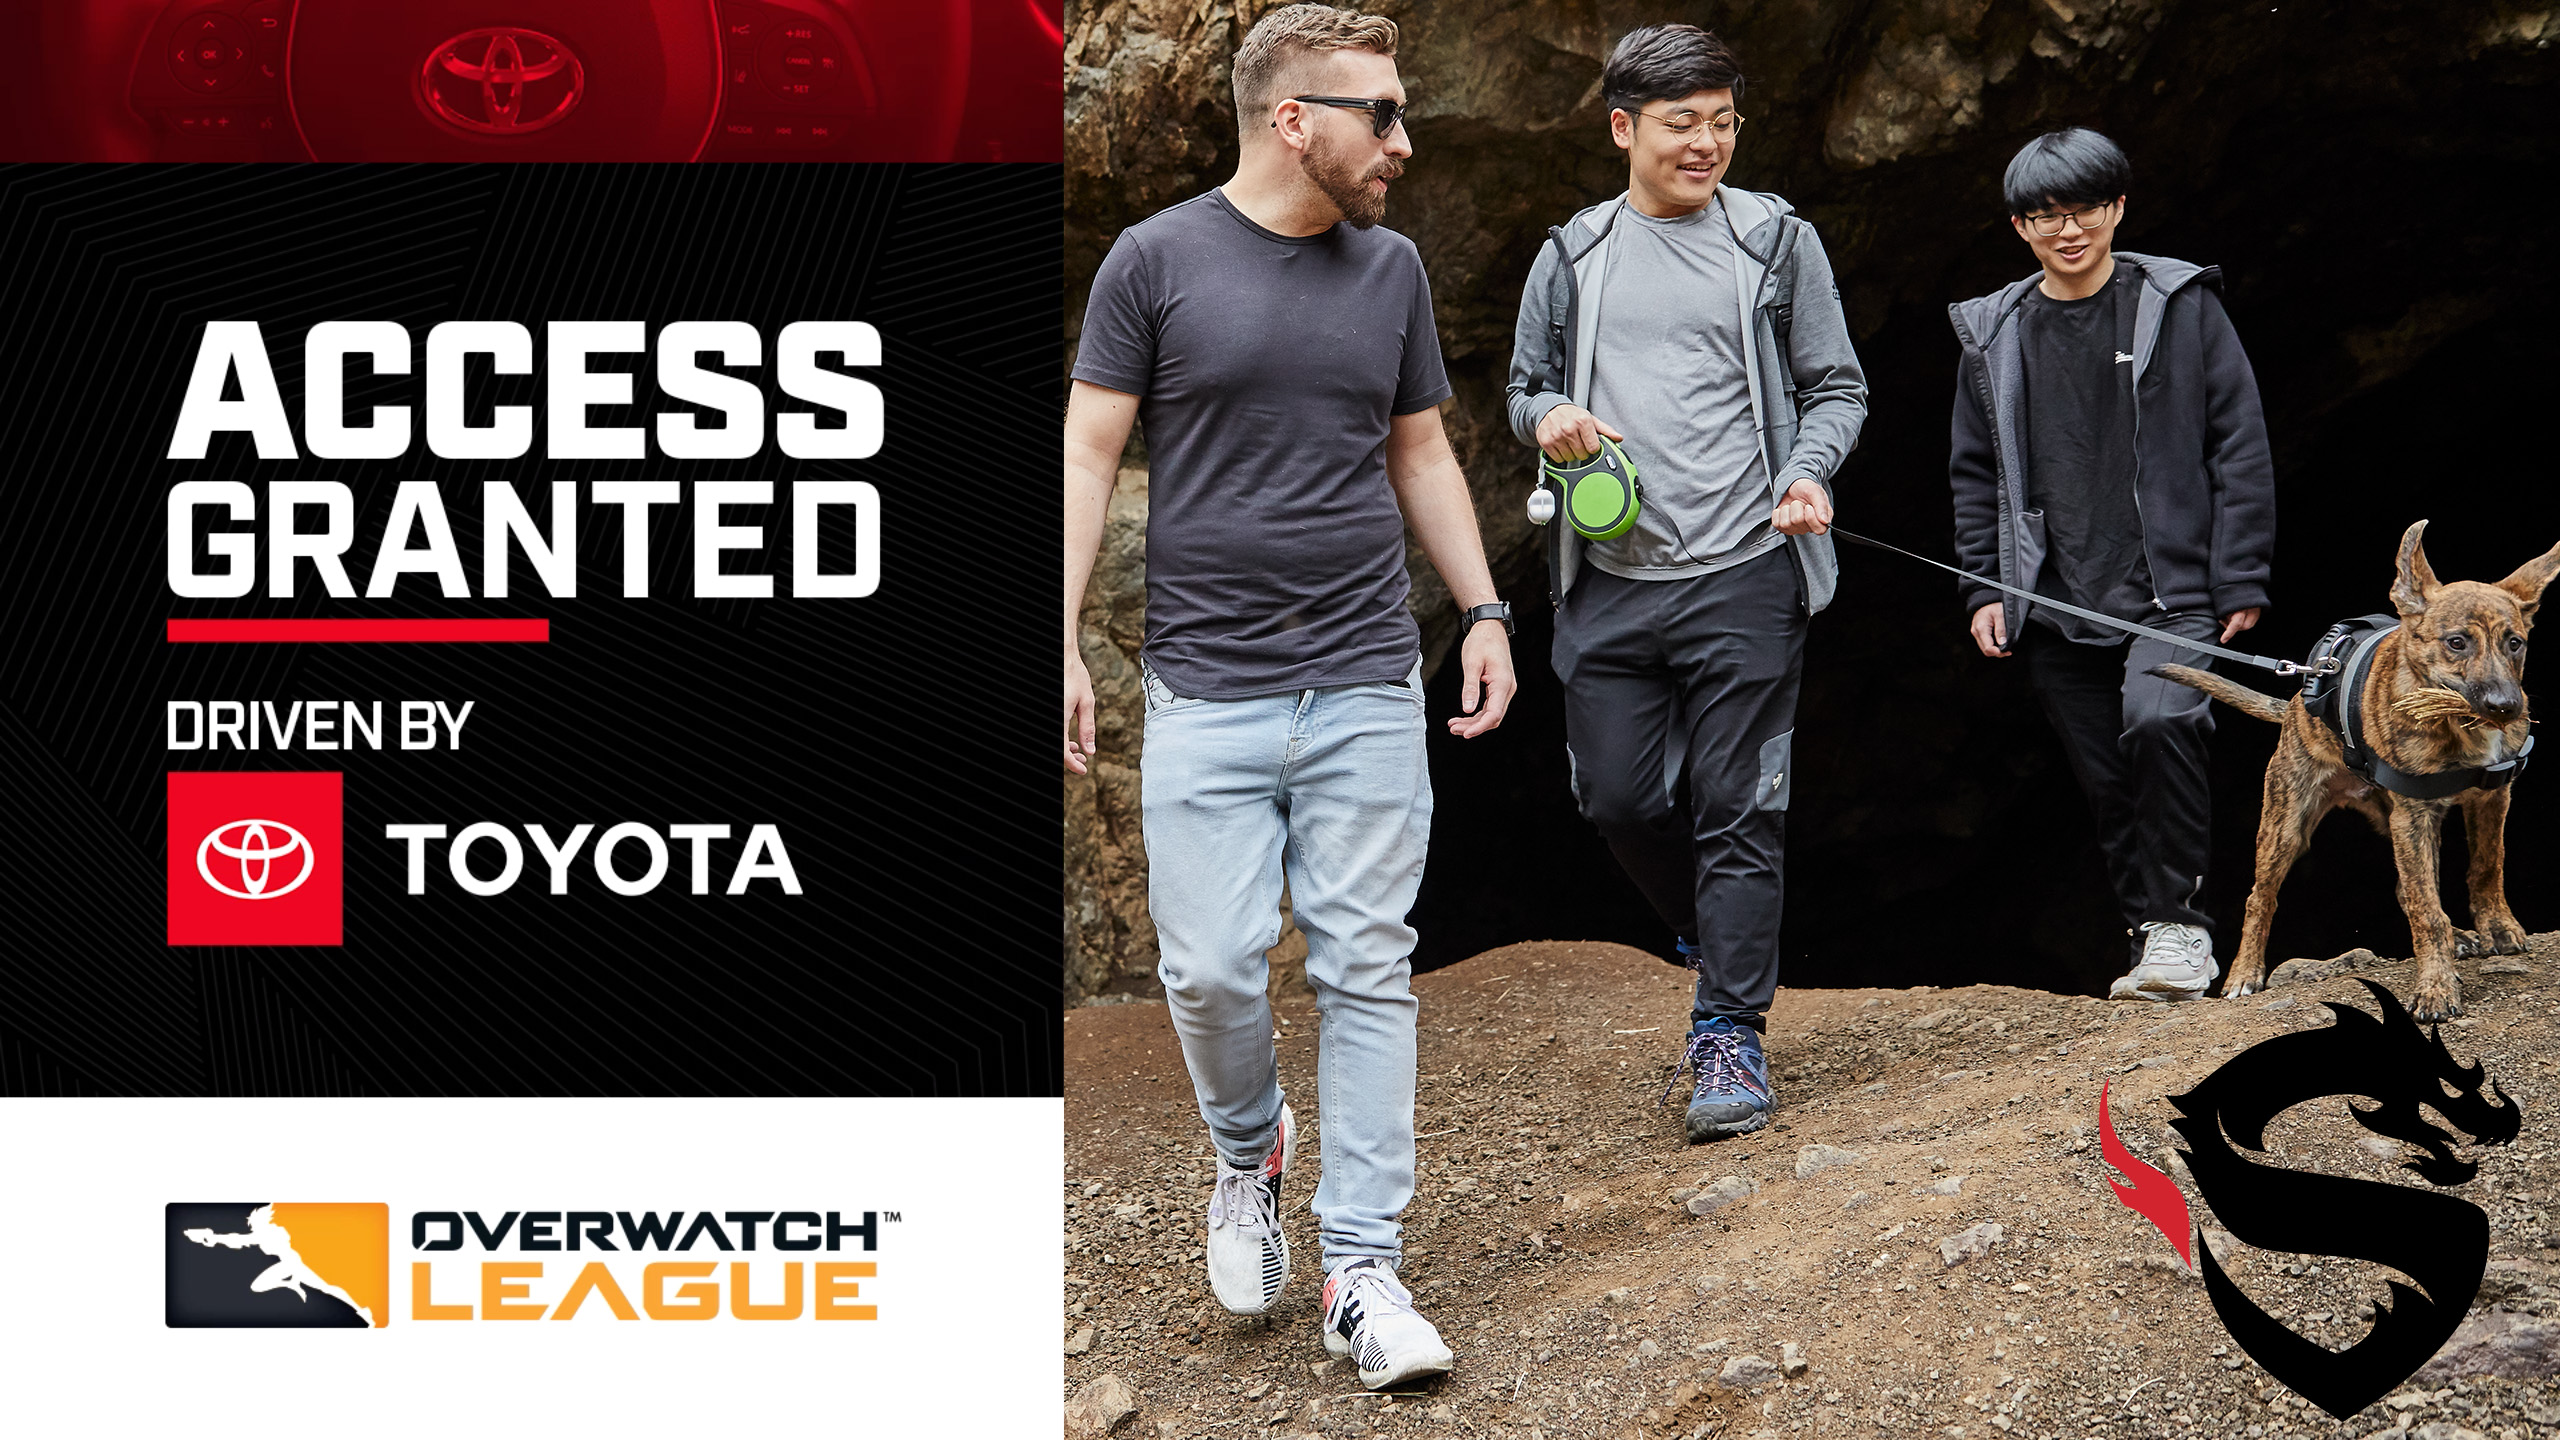 Shanghai Dragons Gamsu And CoMa Go Hiking: Access Granted